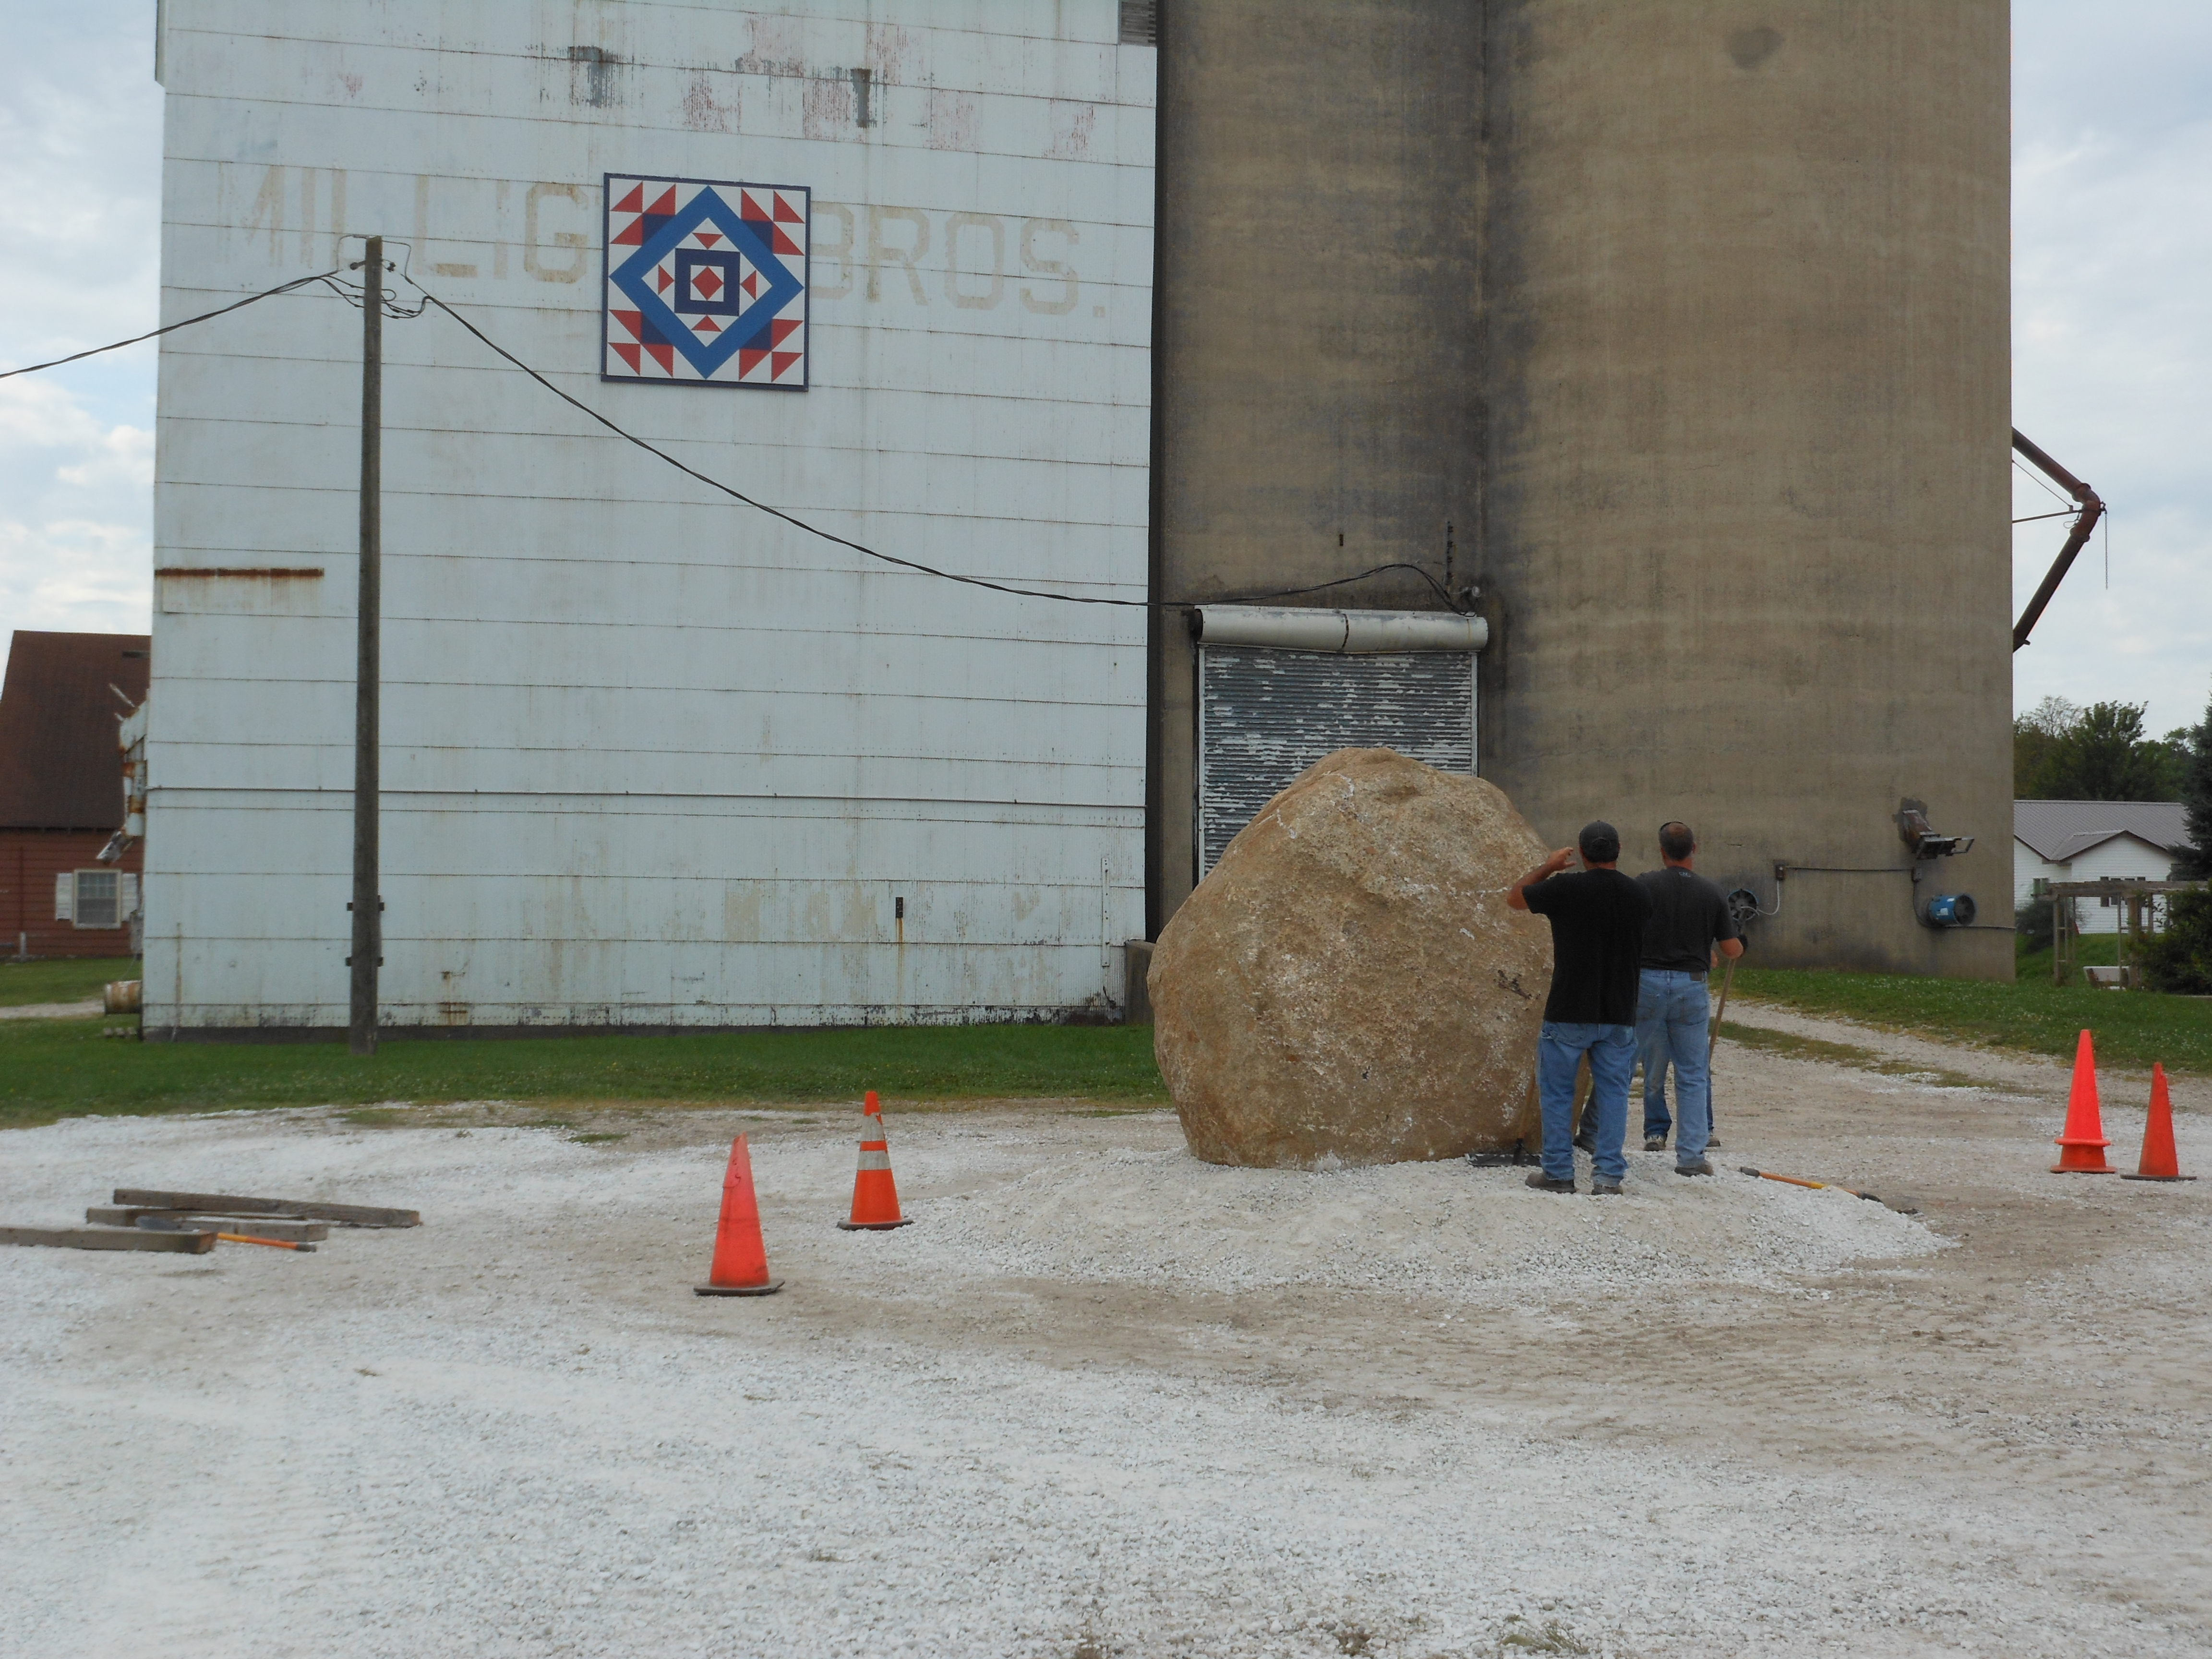 Huge rock is ready to become a Freedom RockGreene County ...